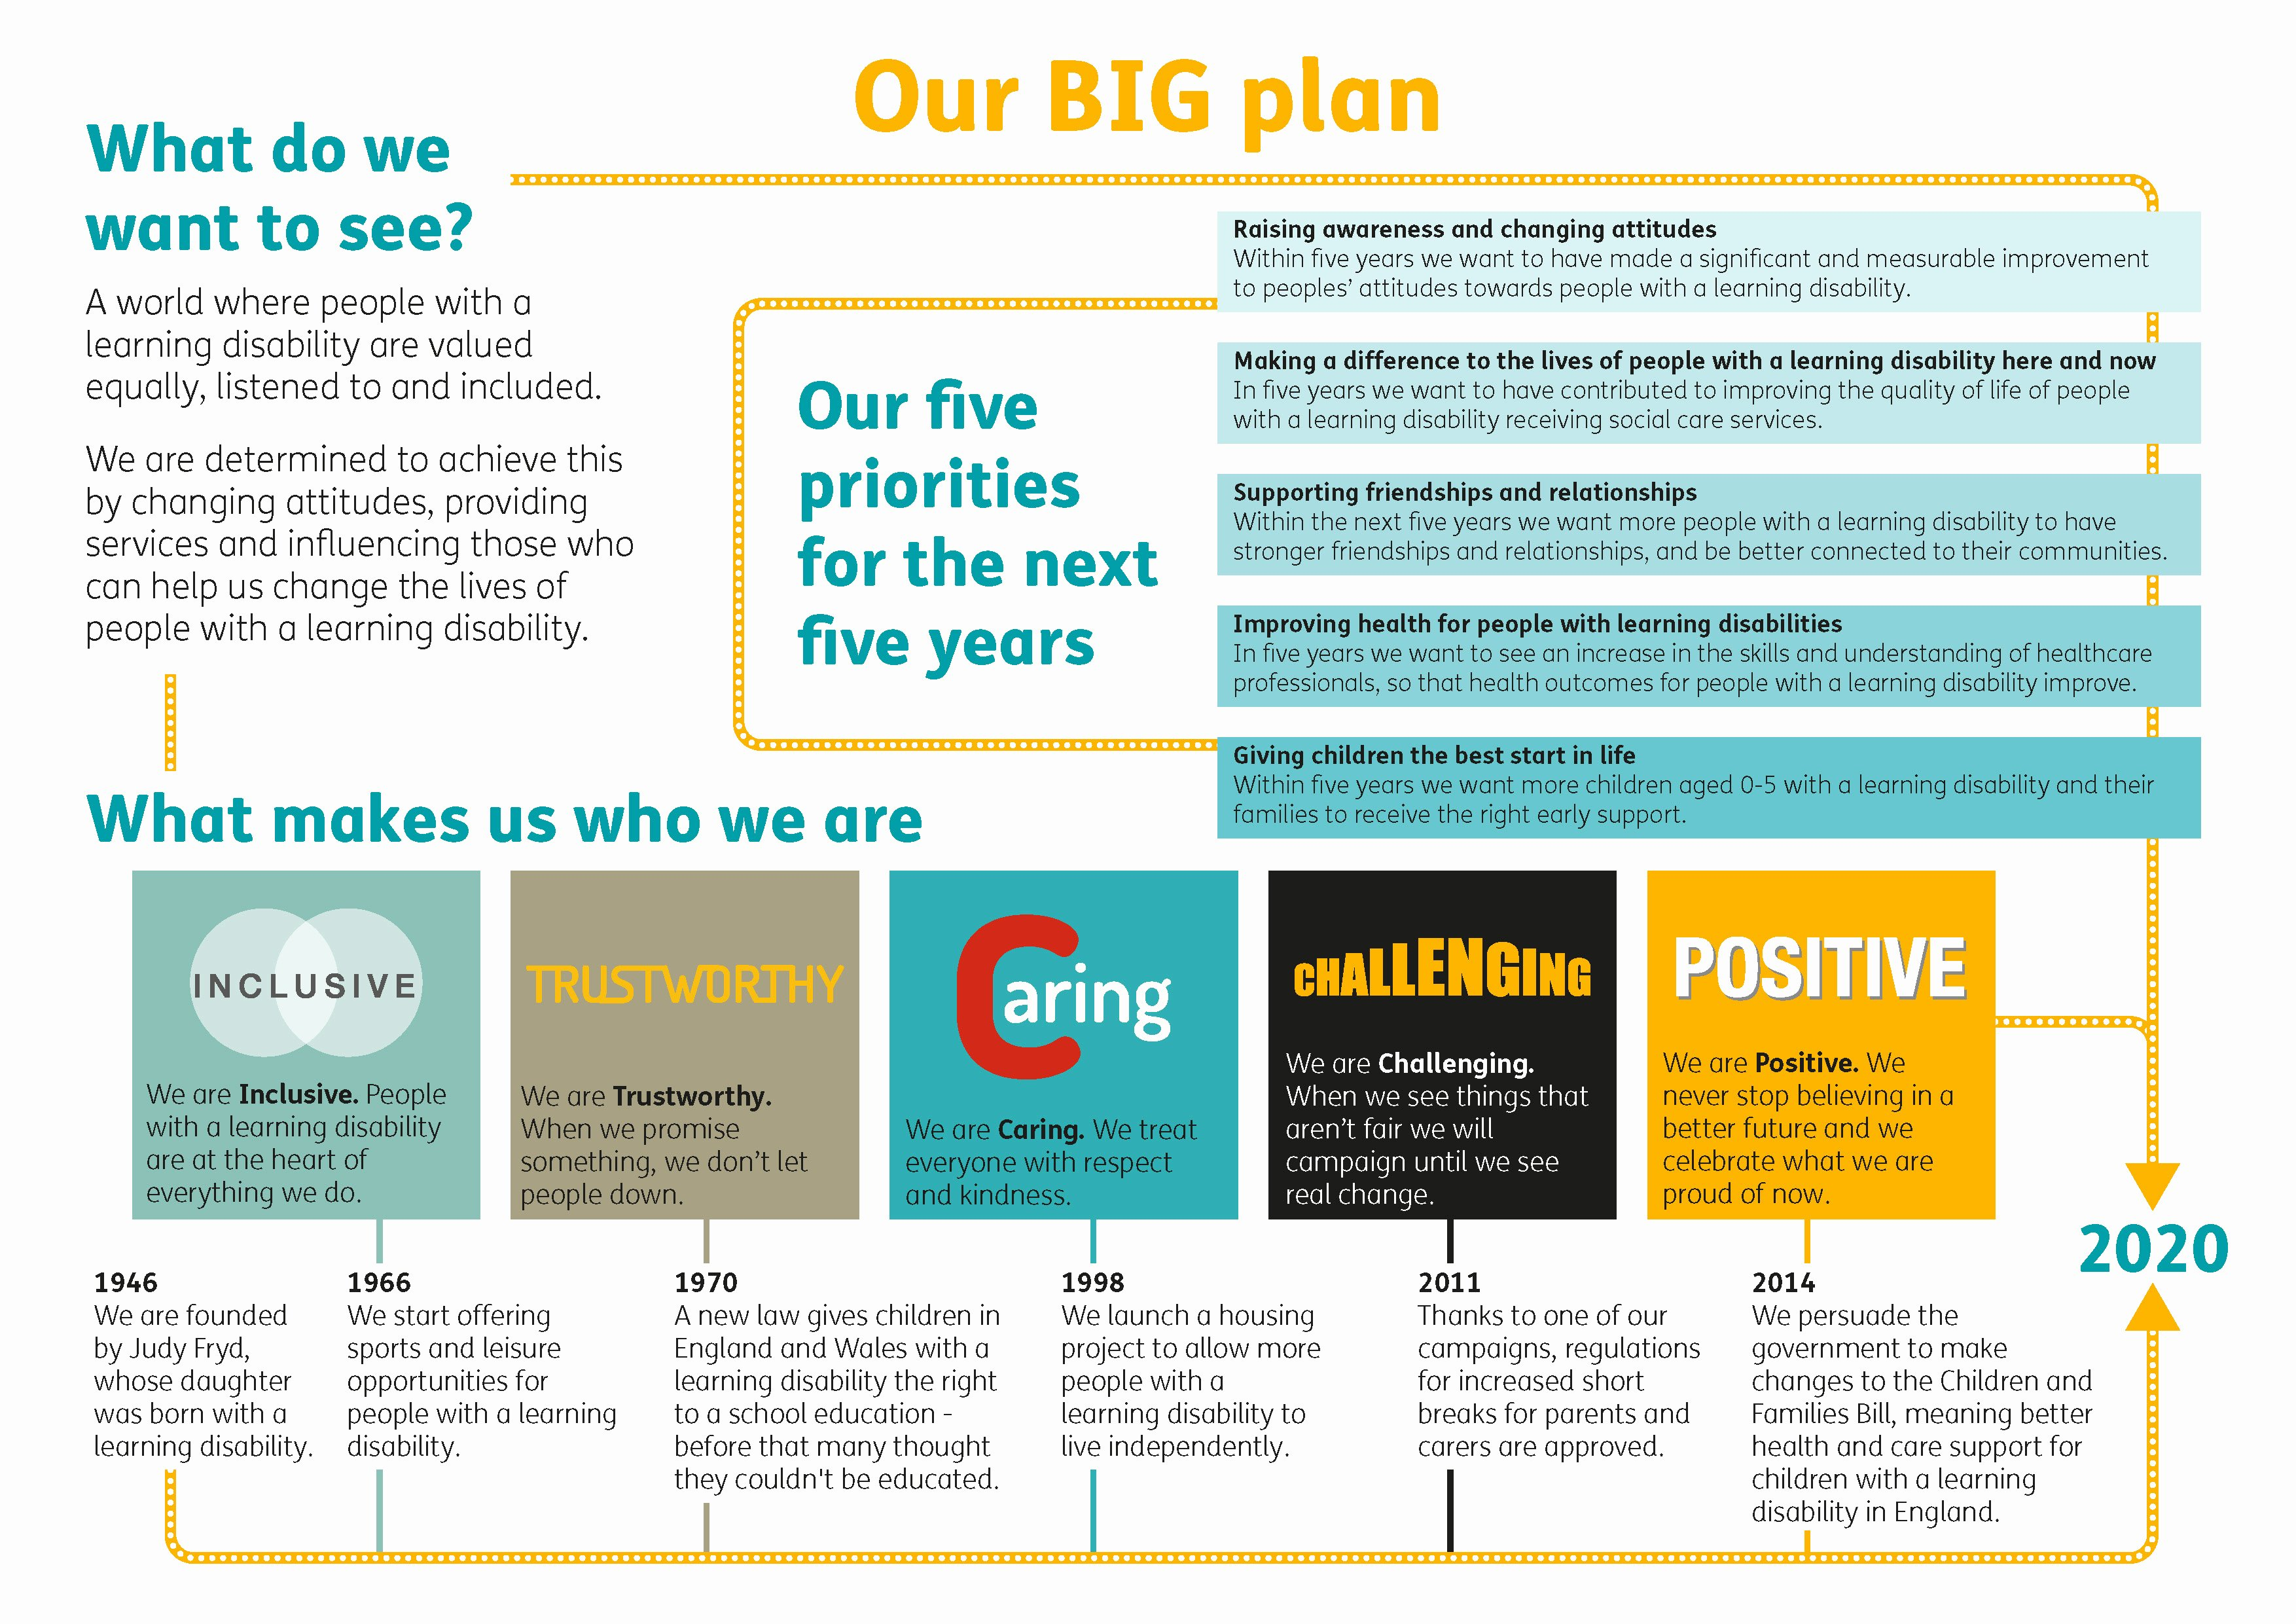 Internal Communications Plan Template Lovely Mencap Shows How to Successfully Launch A Big Plan